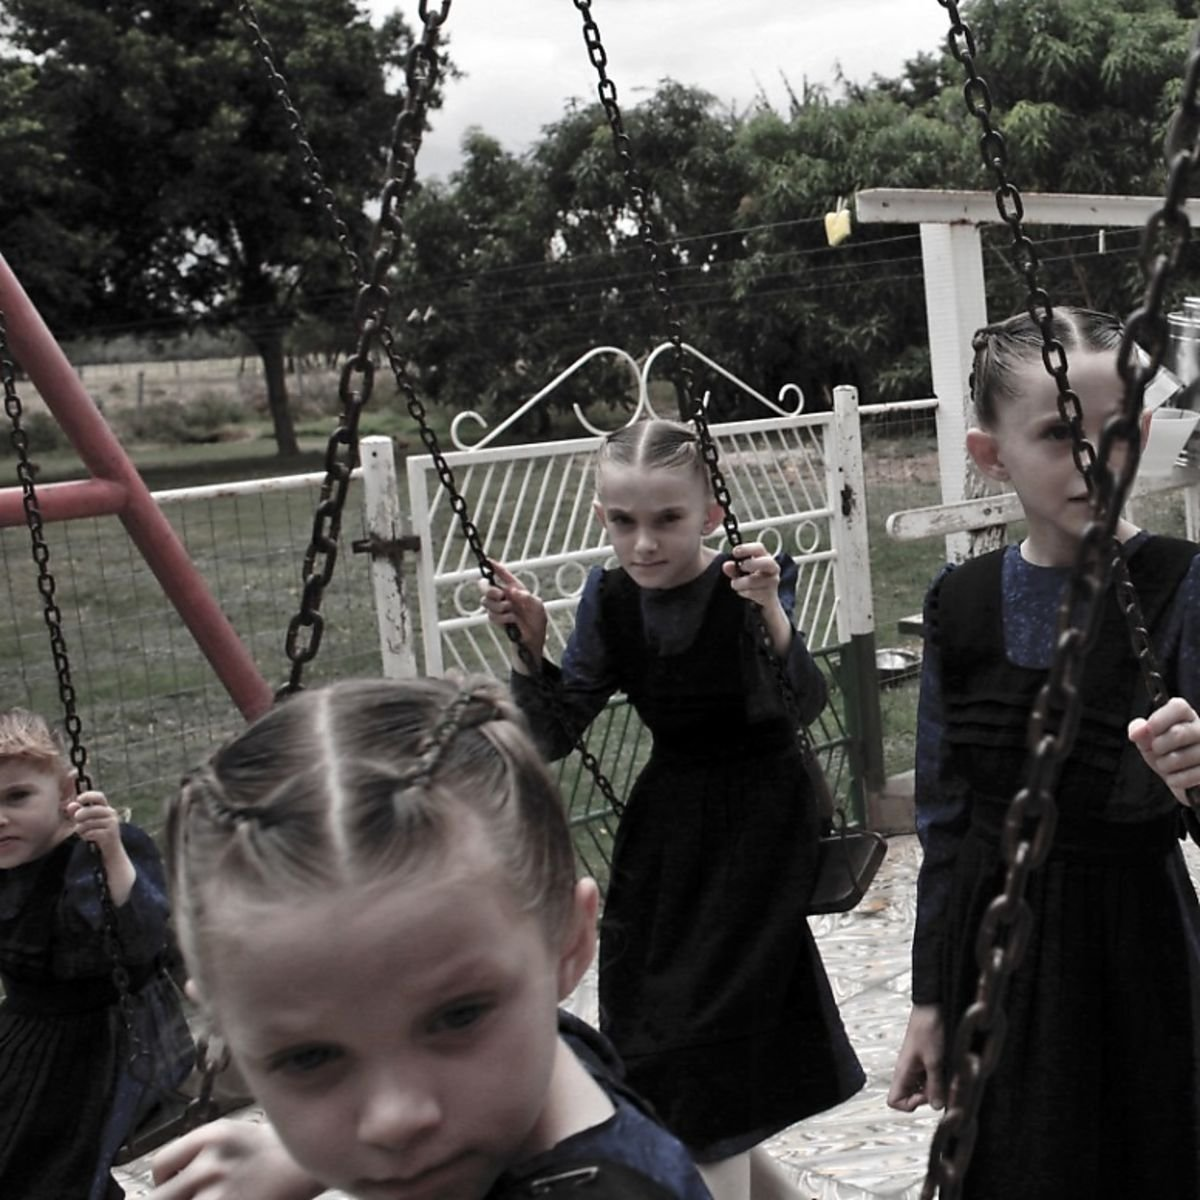 'Amnesty (I)' by Crystal Castles, album review by Joshua Gabert-Doyon.